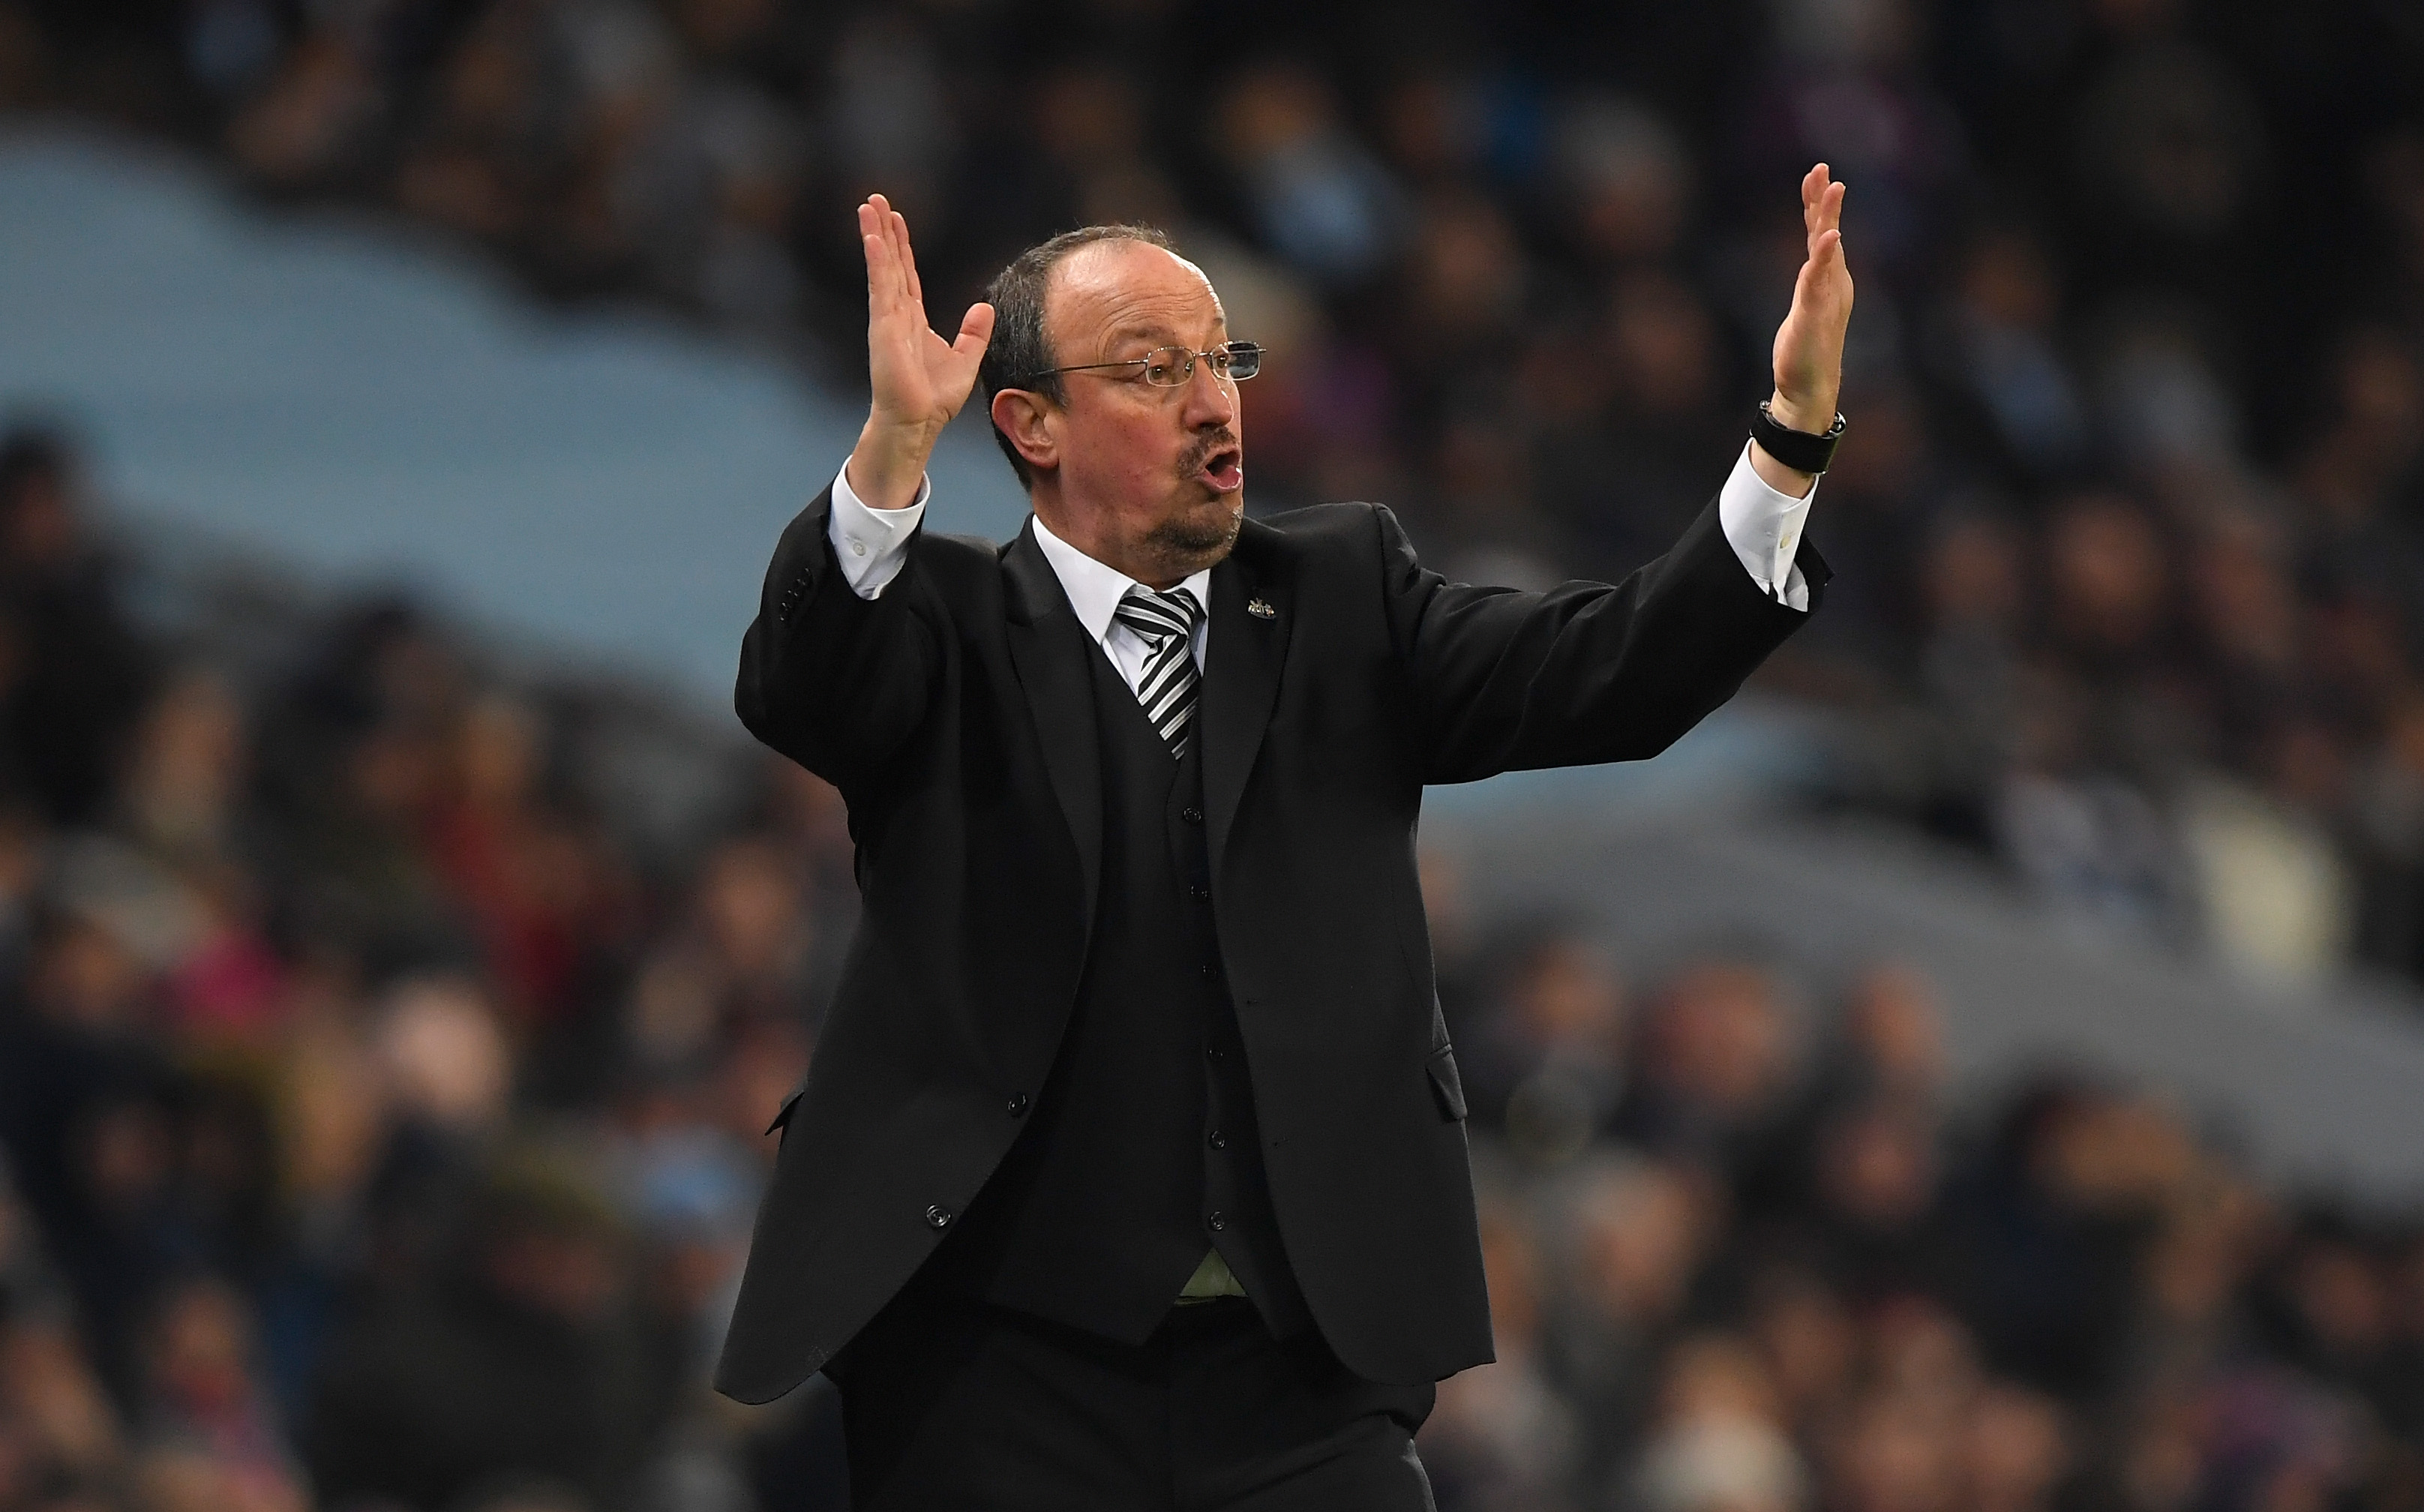 Rafael Benitez is enduring a frustrating time at Newcastle